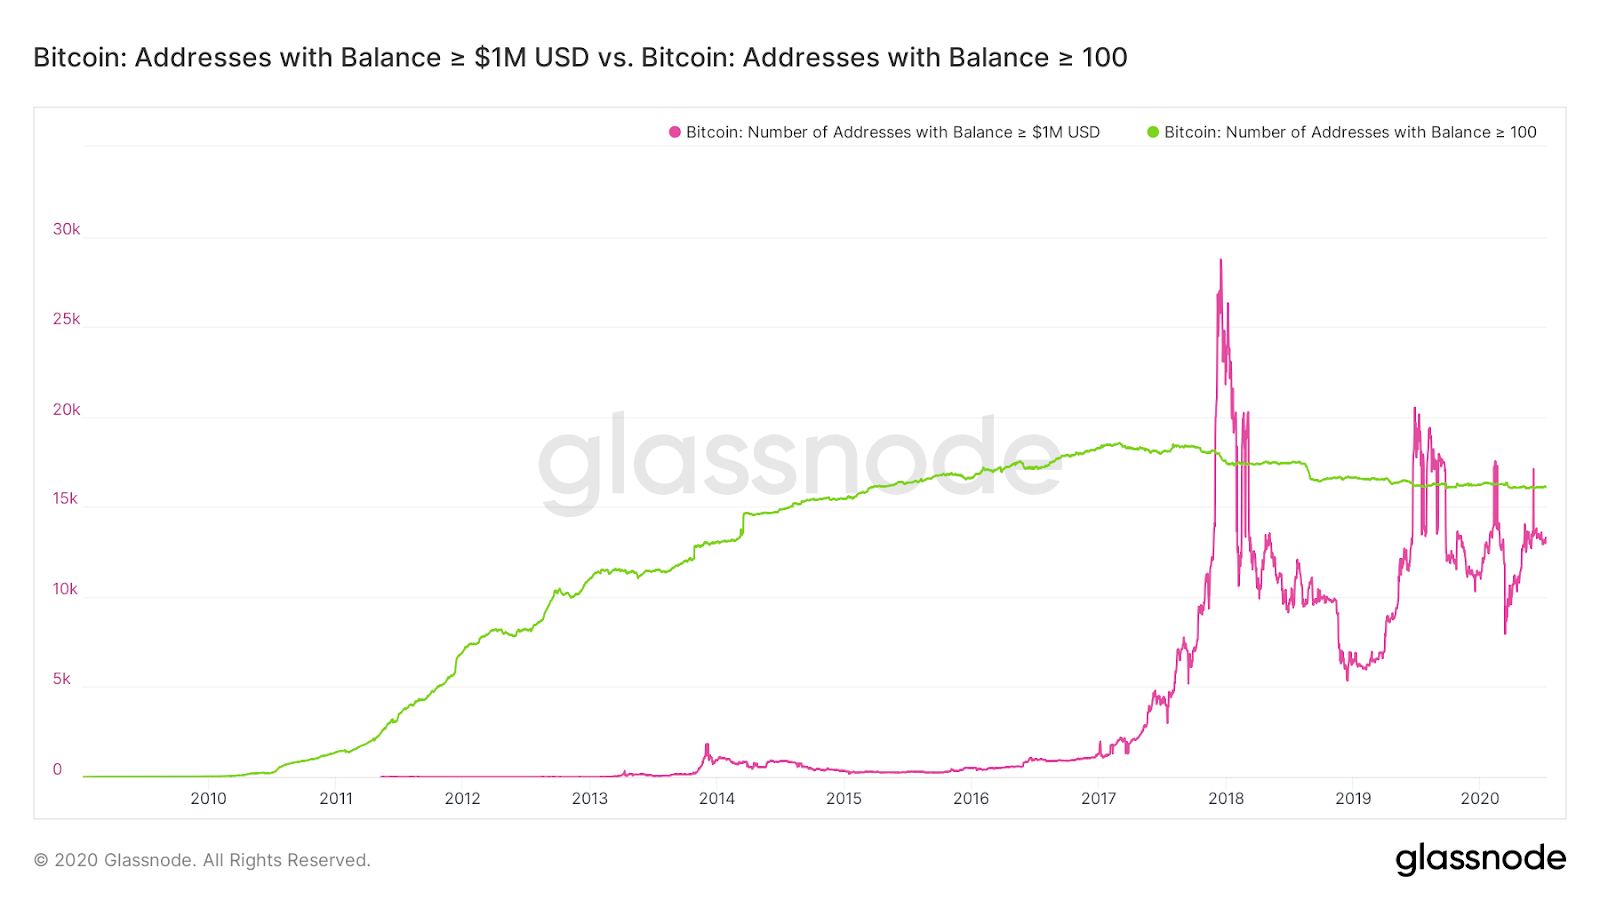 Bitcoin addresses that hold ≥ 100 BTC v. addresses that hold ≥ $1M worth of BTC